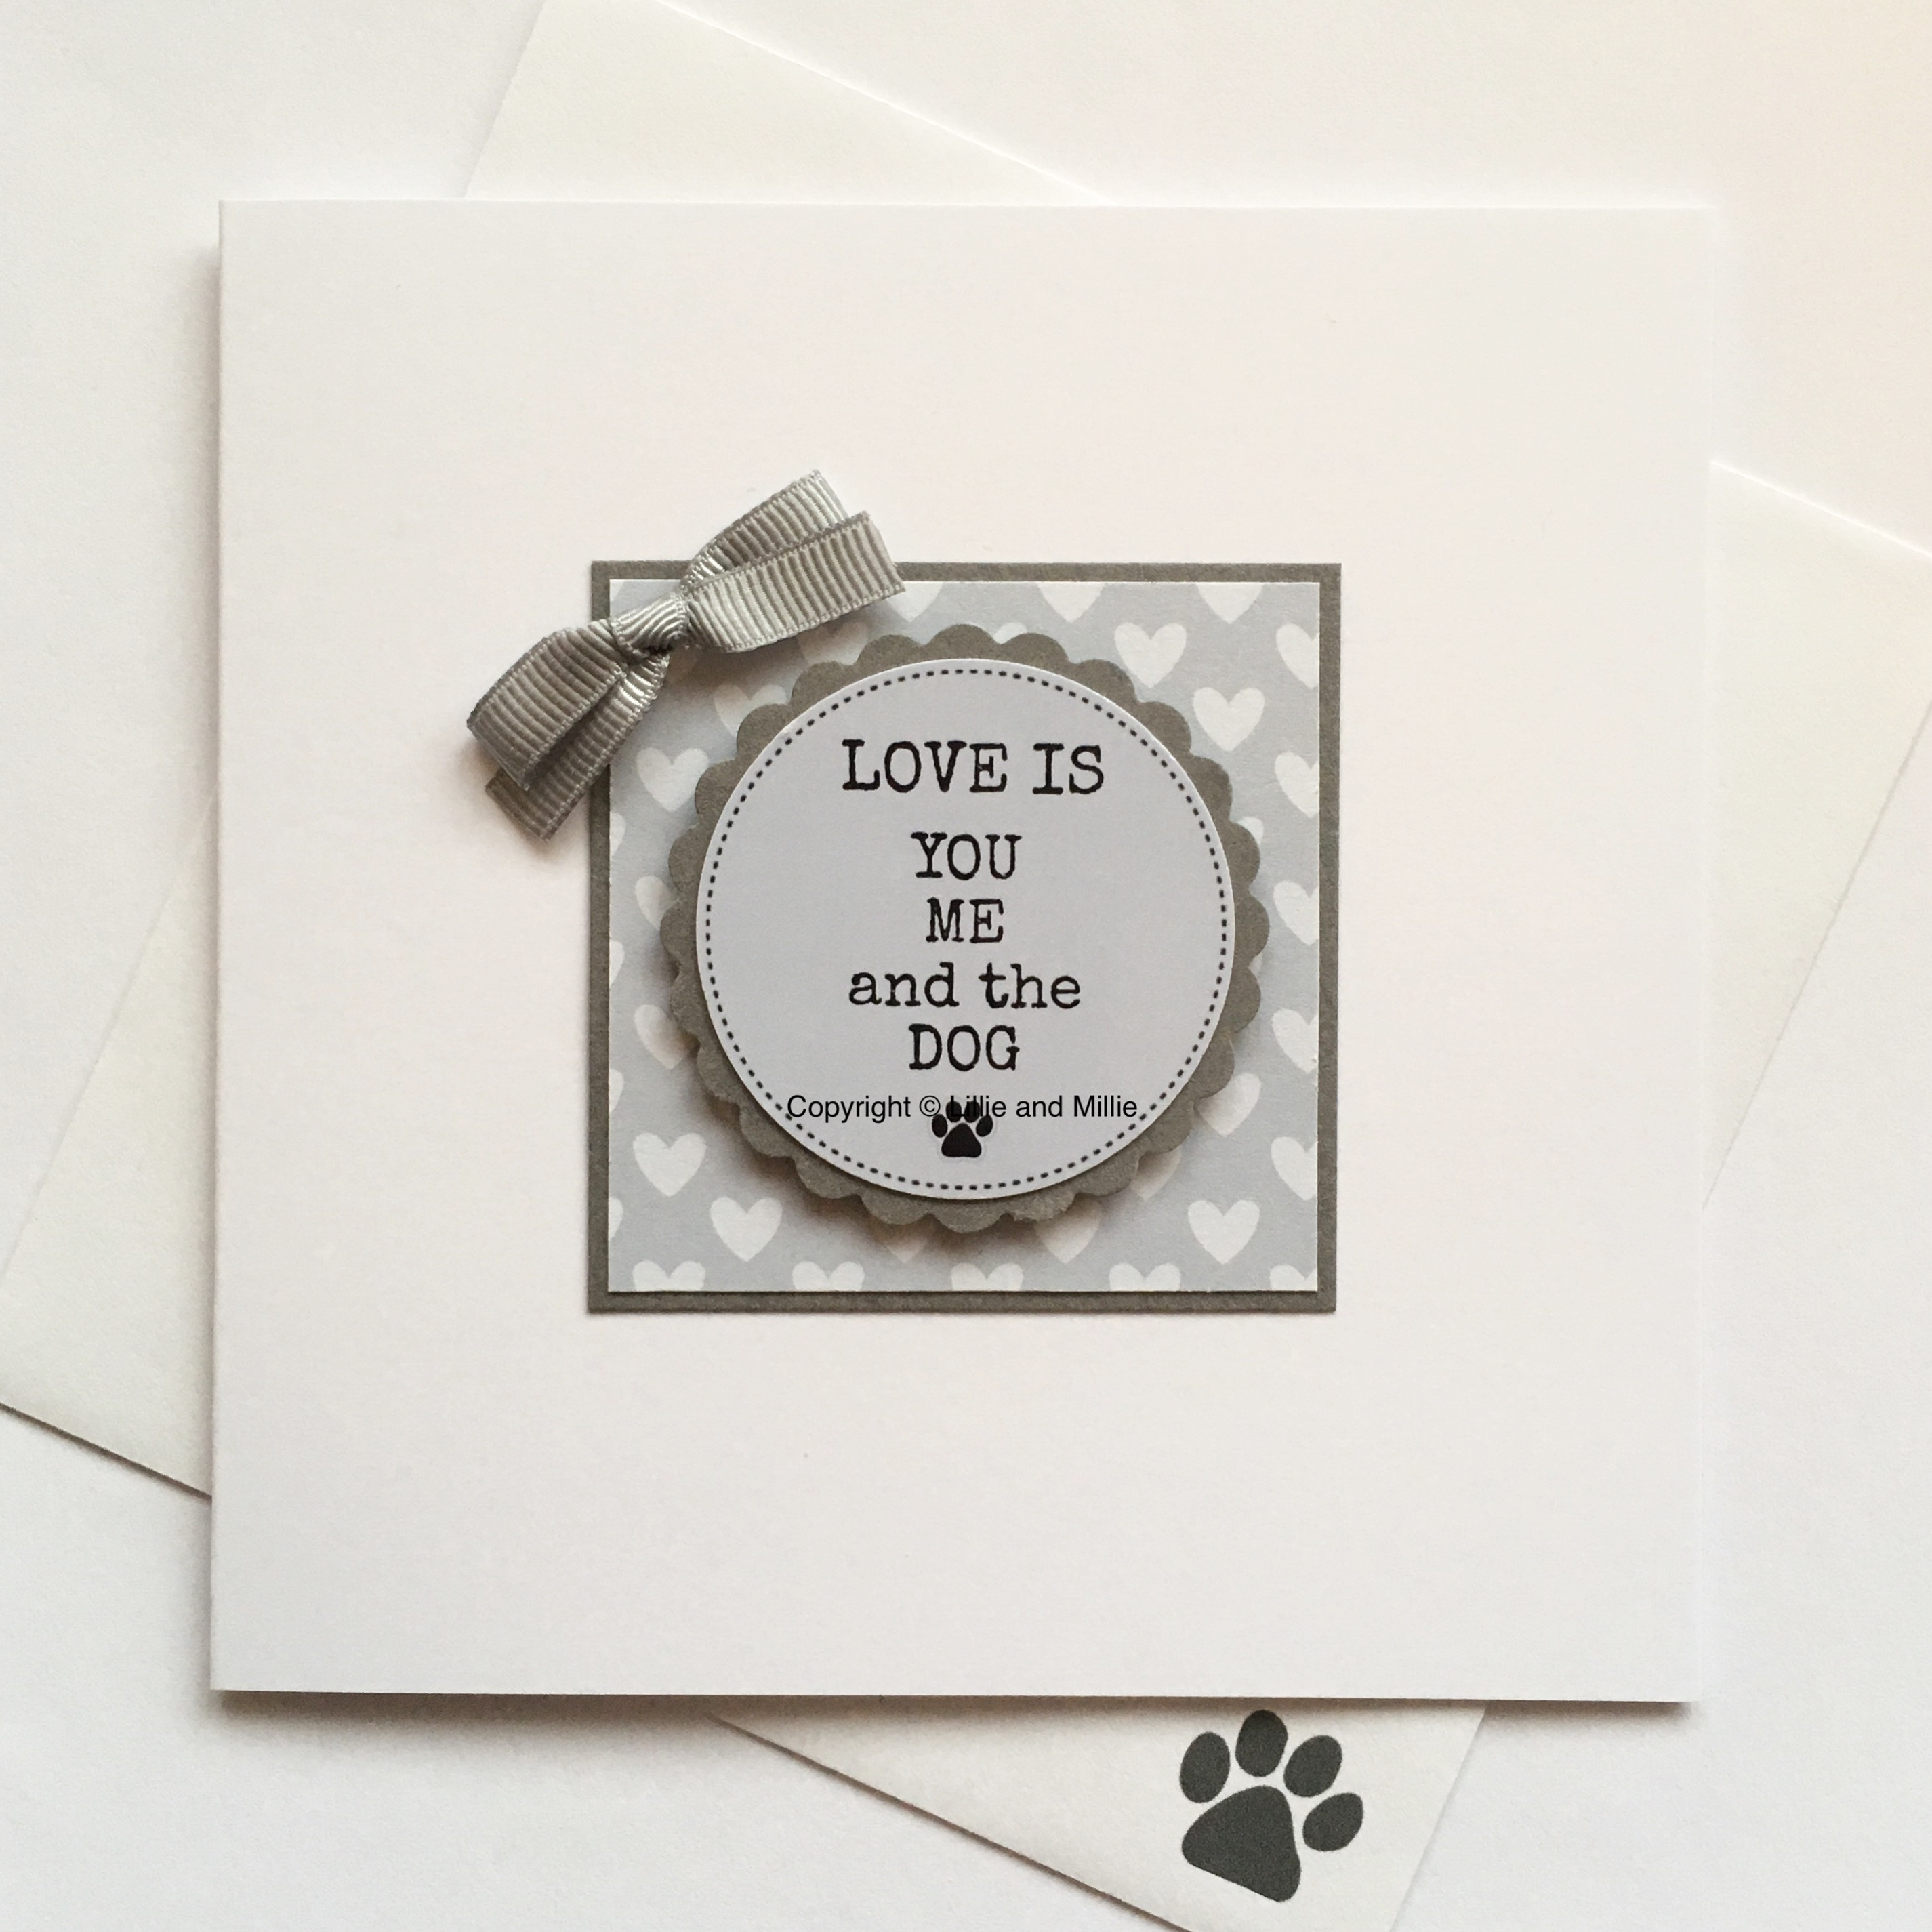 Love is You Me and the Dog Blue Card